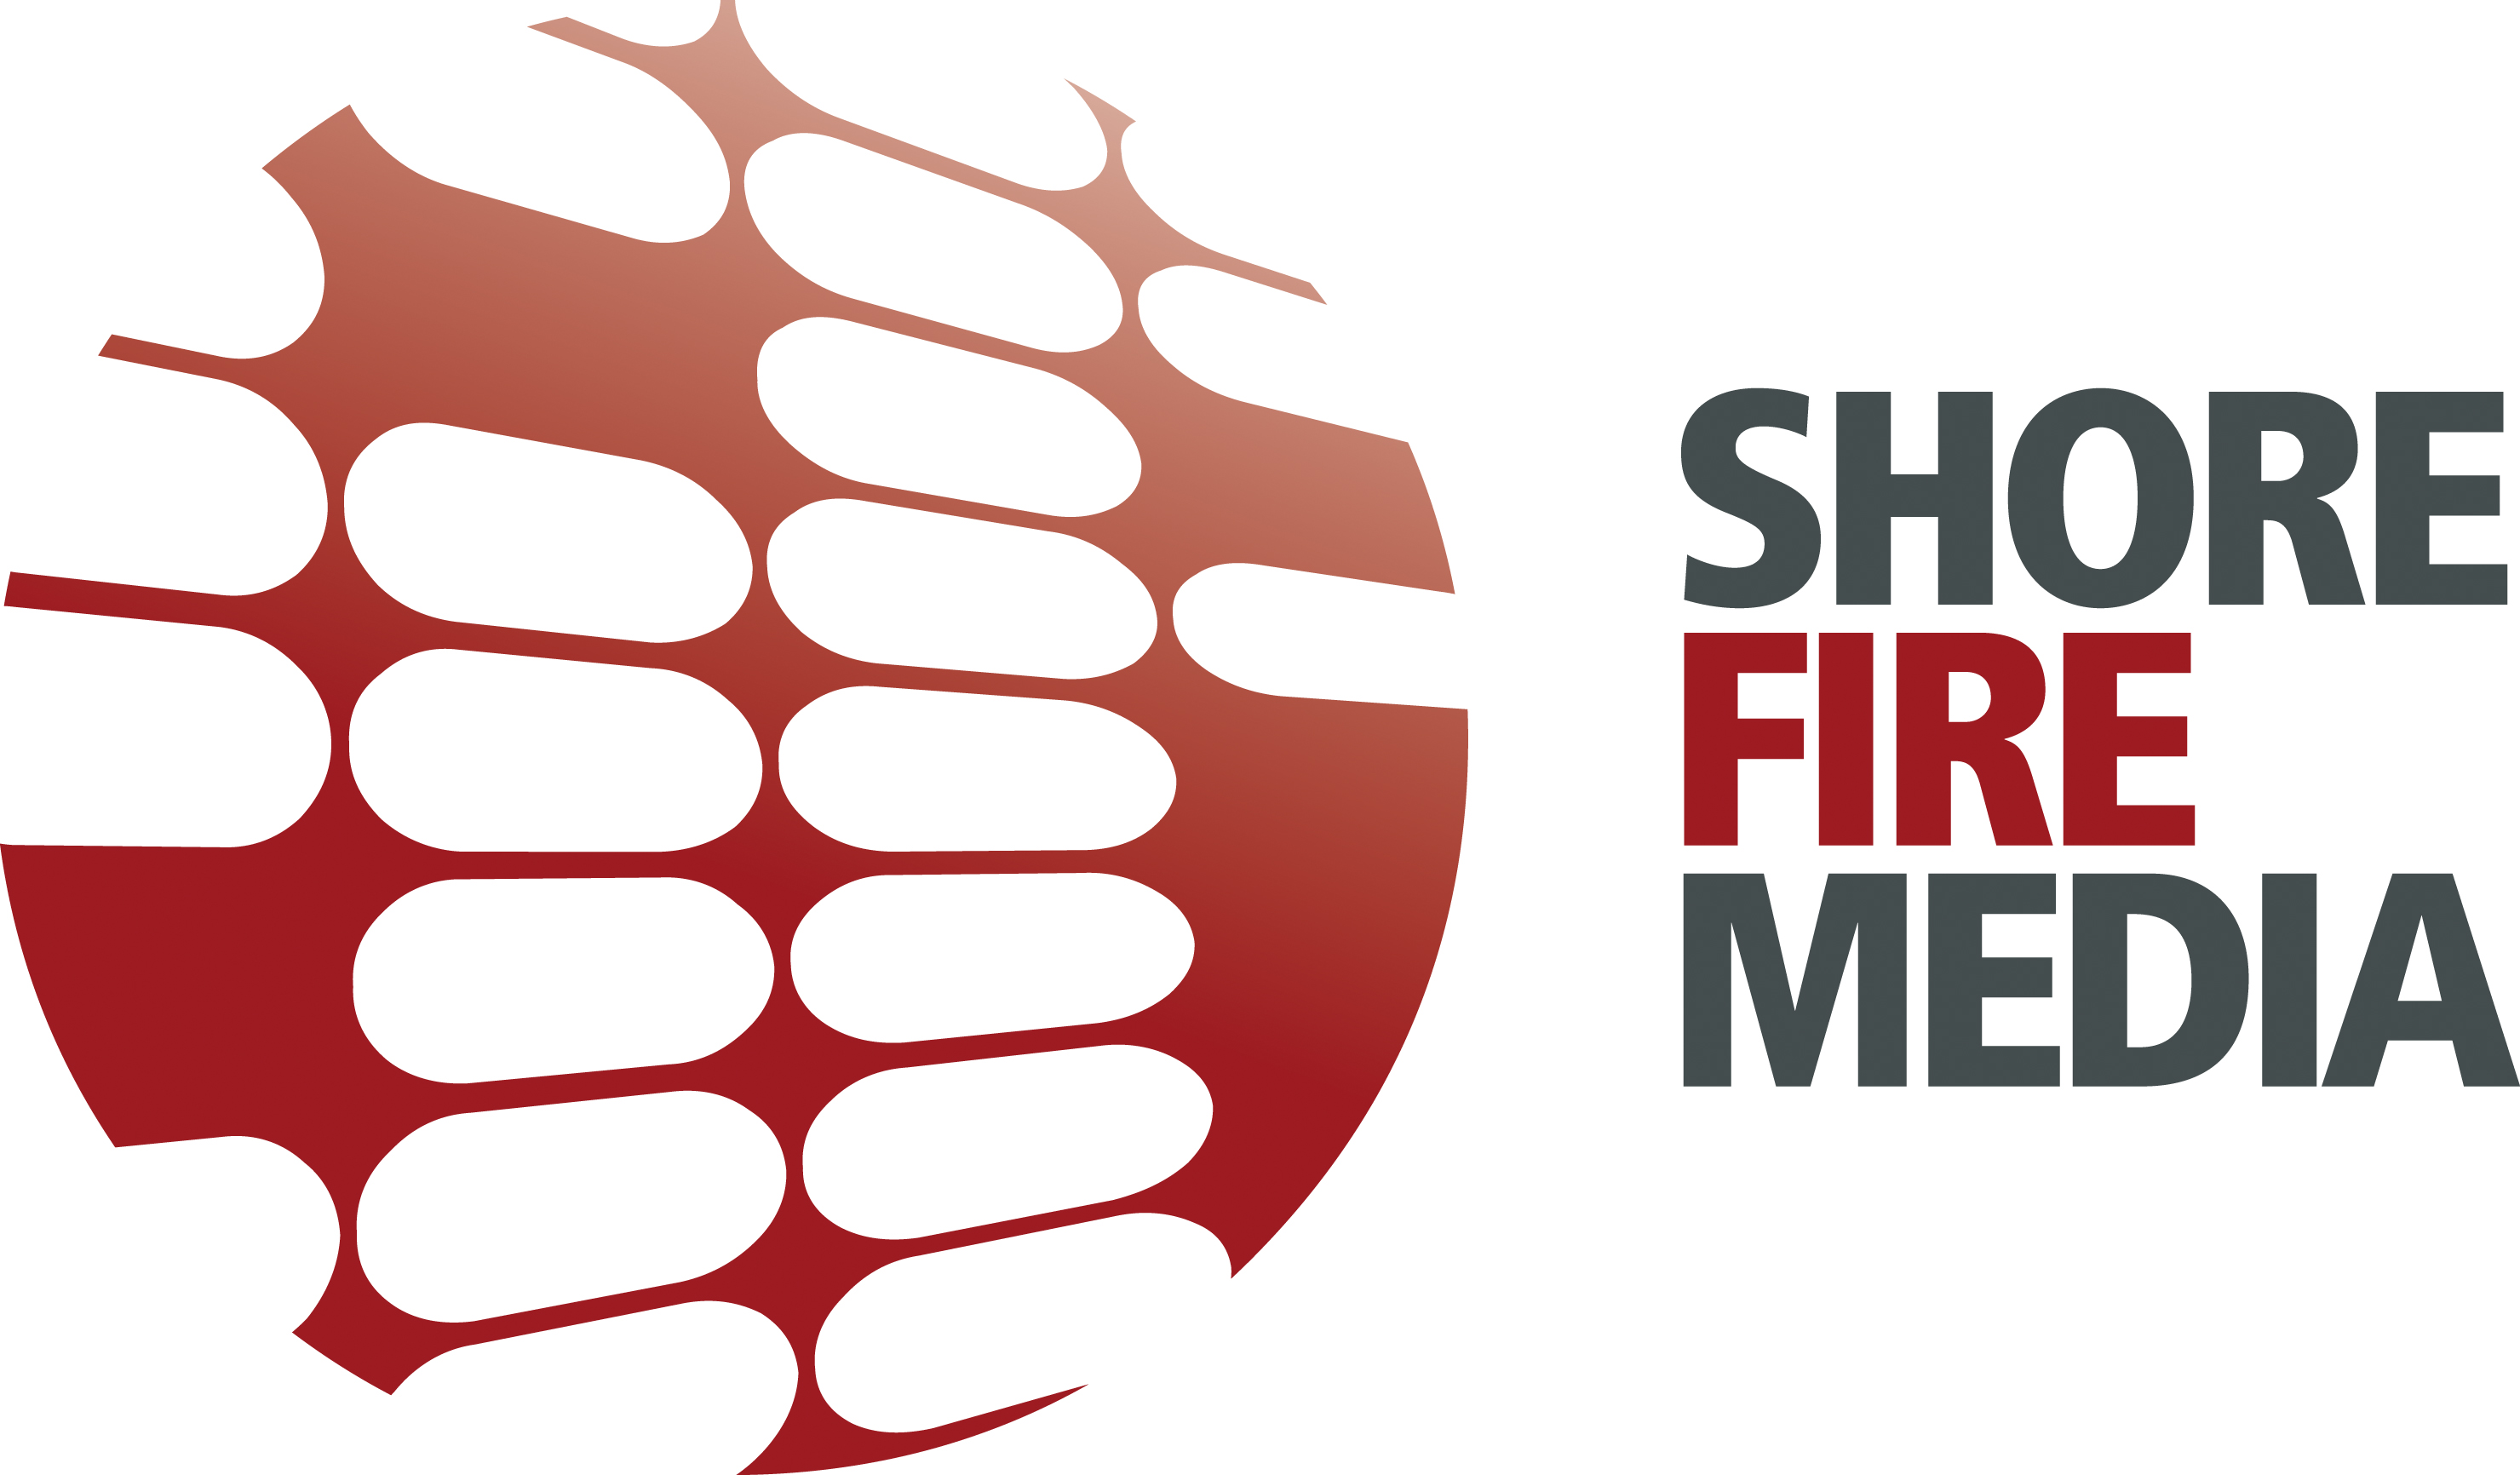 shore fire media logo